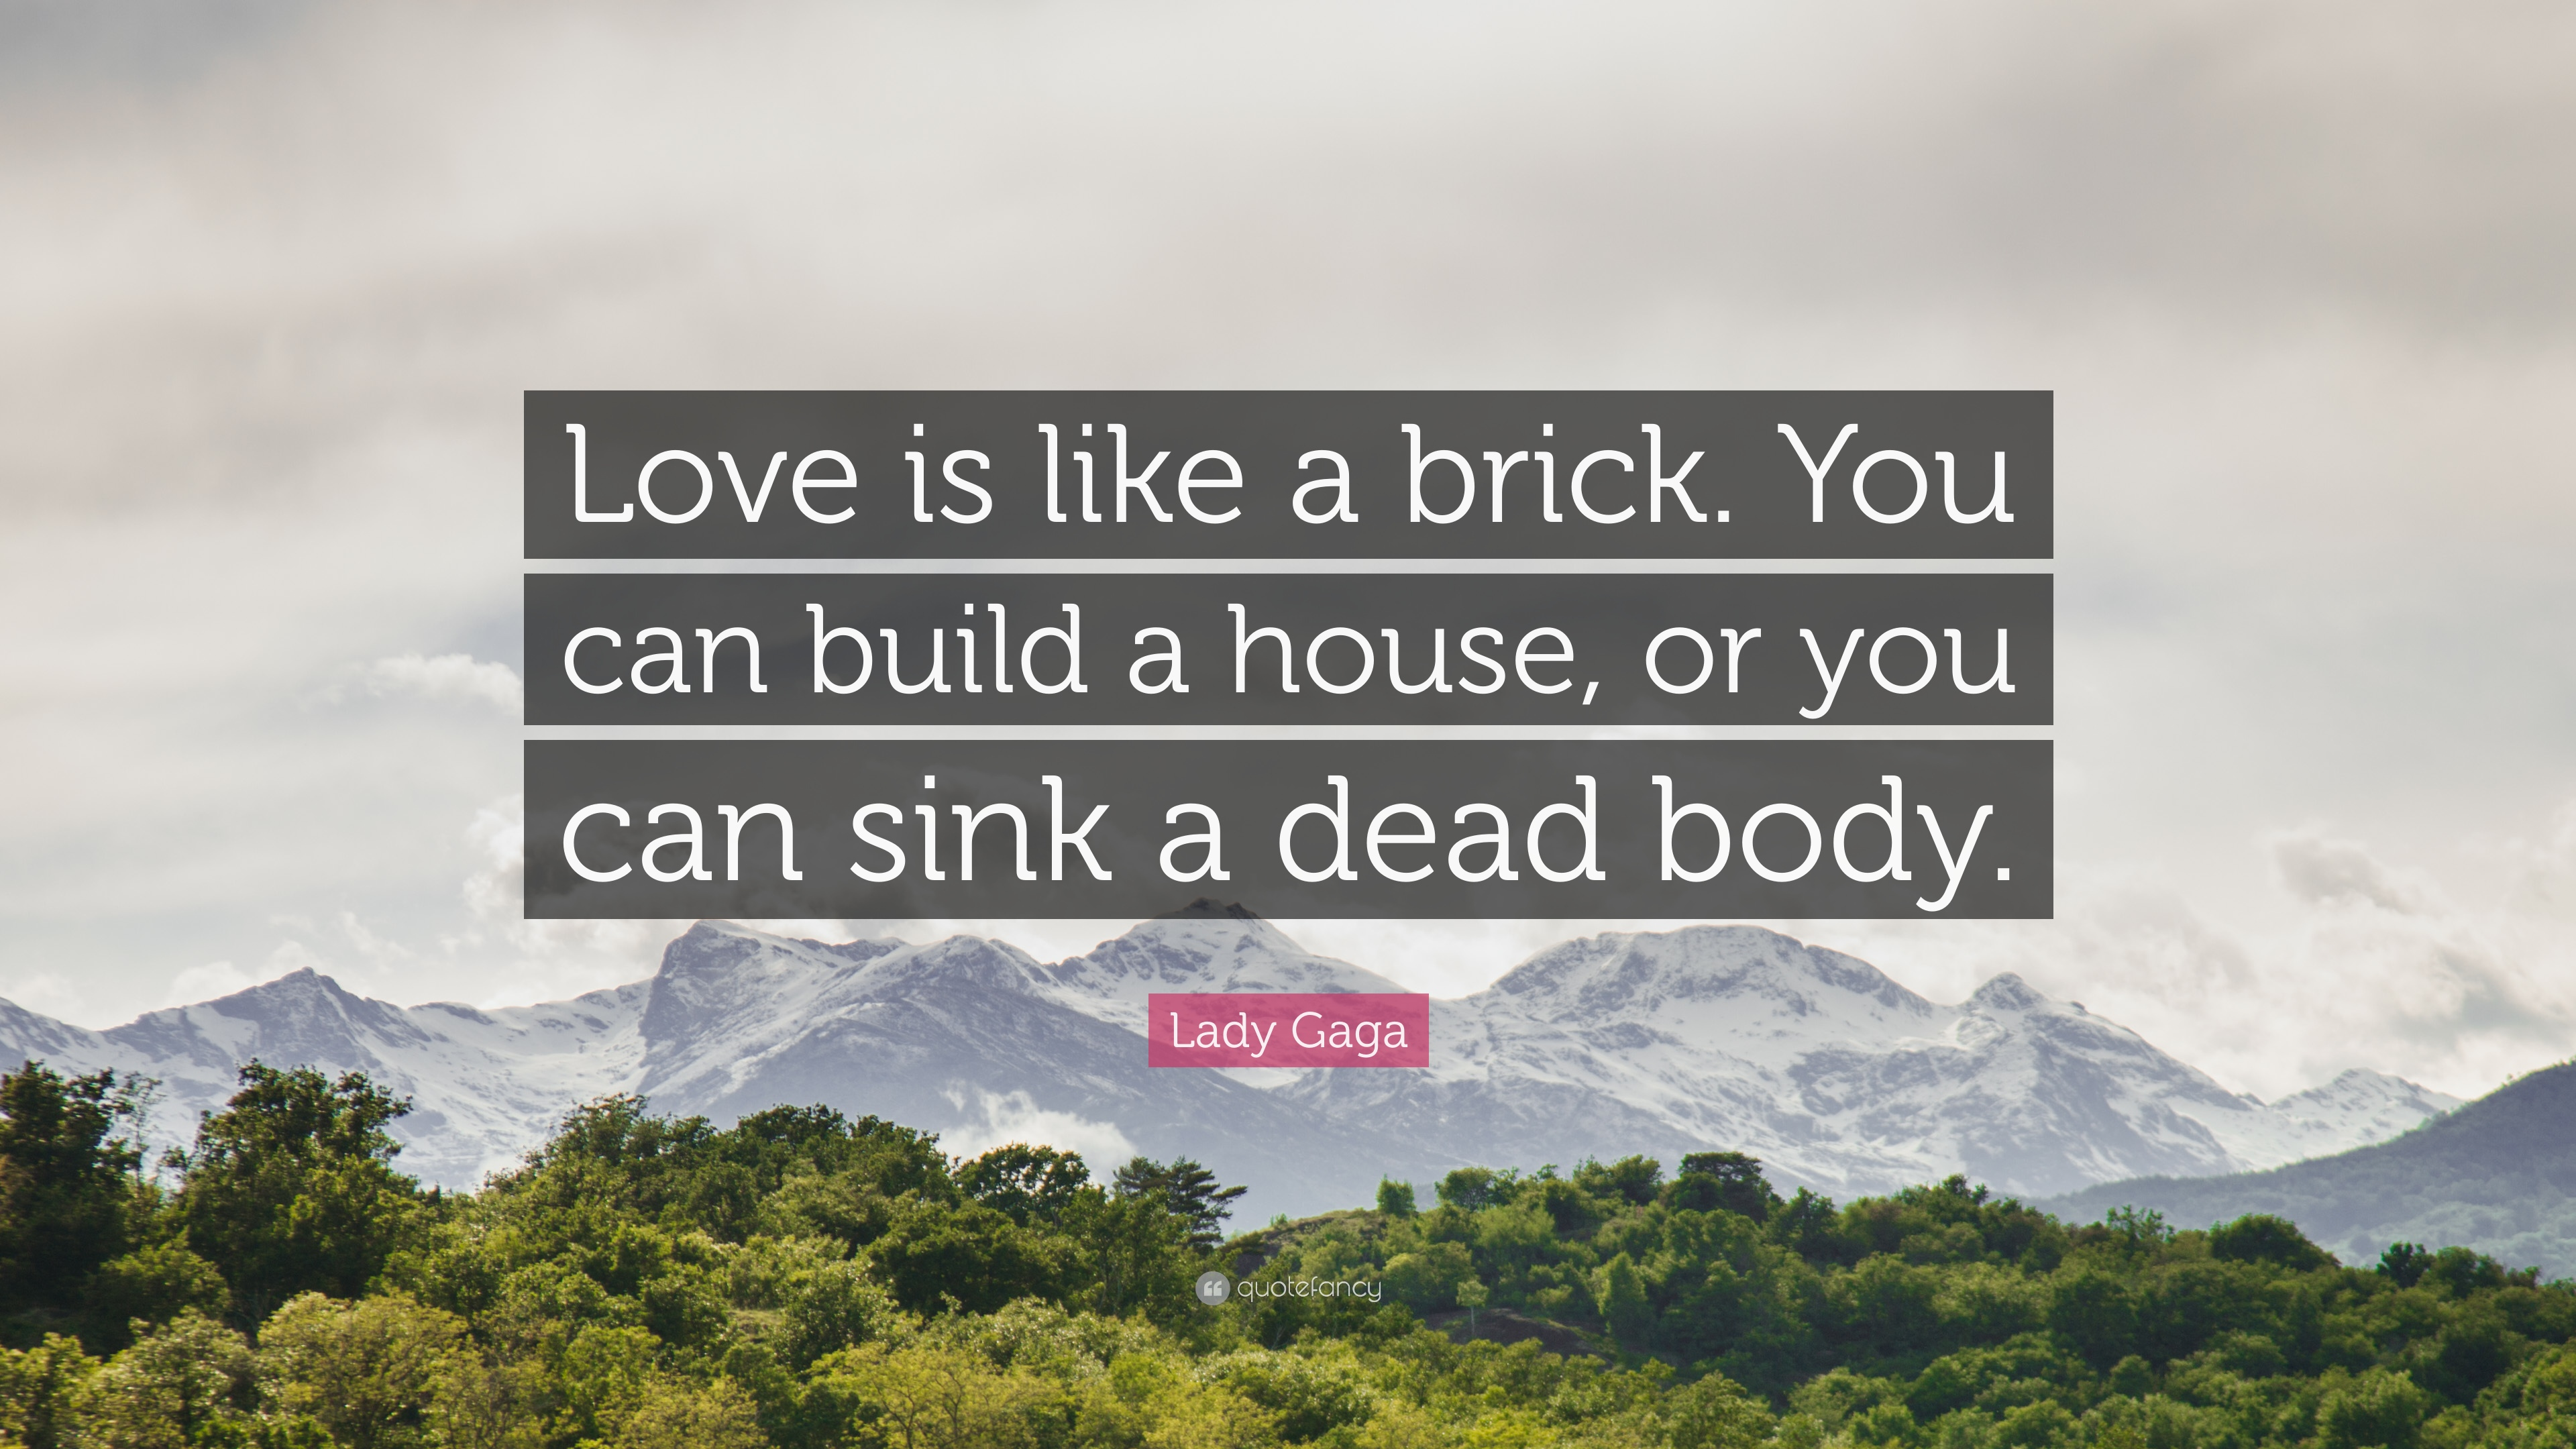 Captivating Lady Gaga Quote: U201cLove Is Like A Brick. You Can Build A House